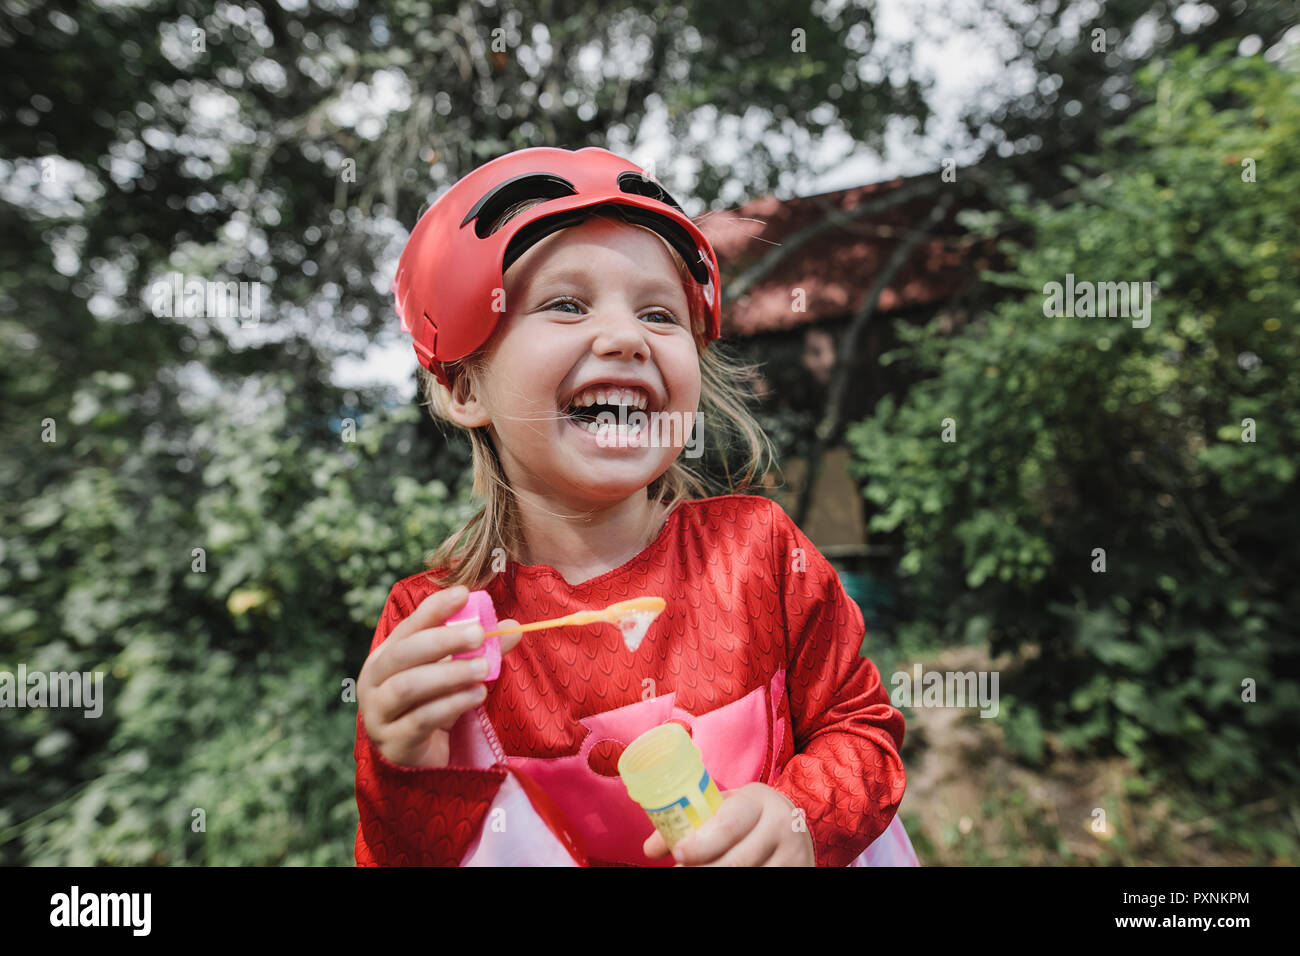 Portrait of laughing masqueraded little girl having fun Stock Photo